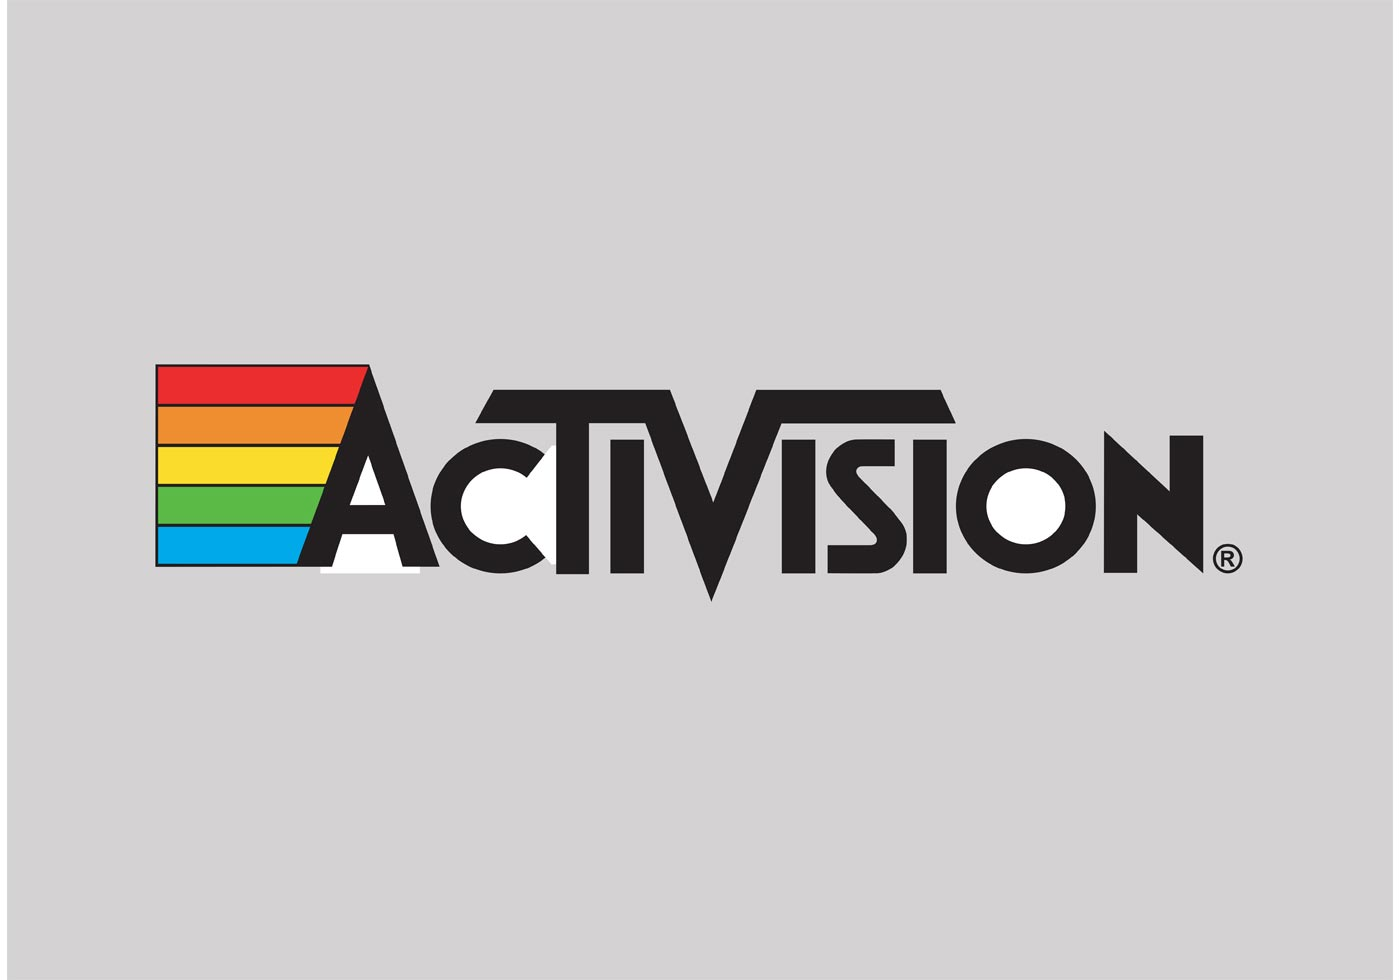 activision download free vector art stock graphics amp images